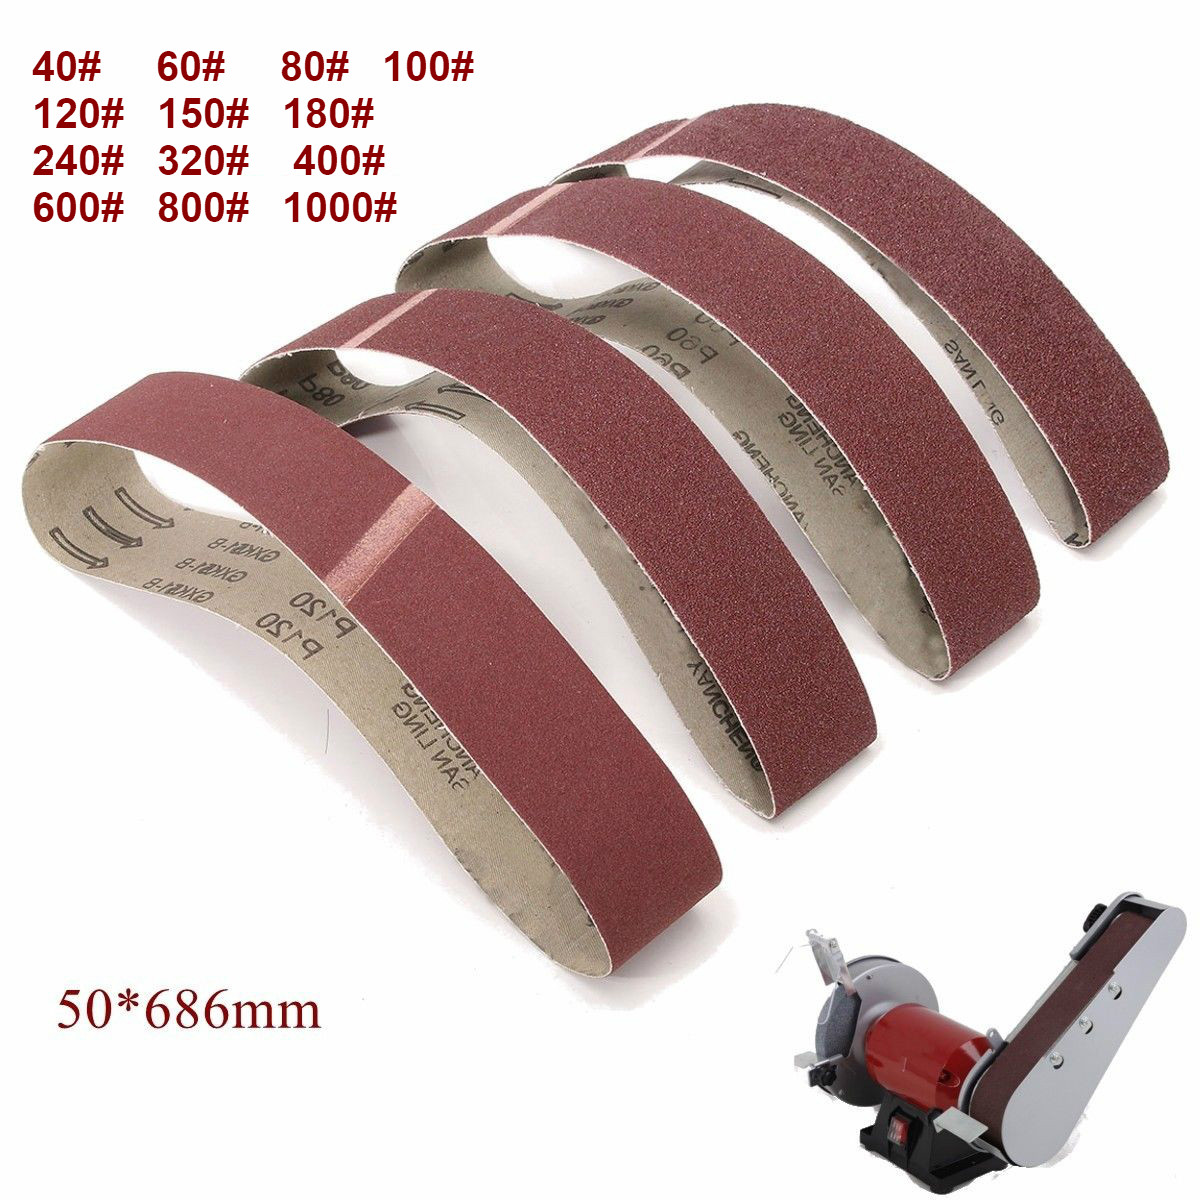 10Pack 686*50mm Sanding Belts 40 1000 Grit  Aluminium Oxide Sander Sanding Belts-in Abrasive Tools from Tools